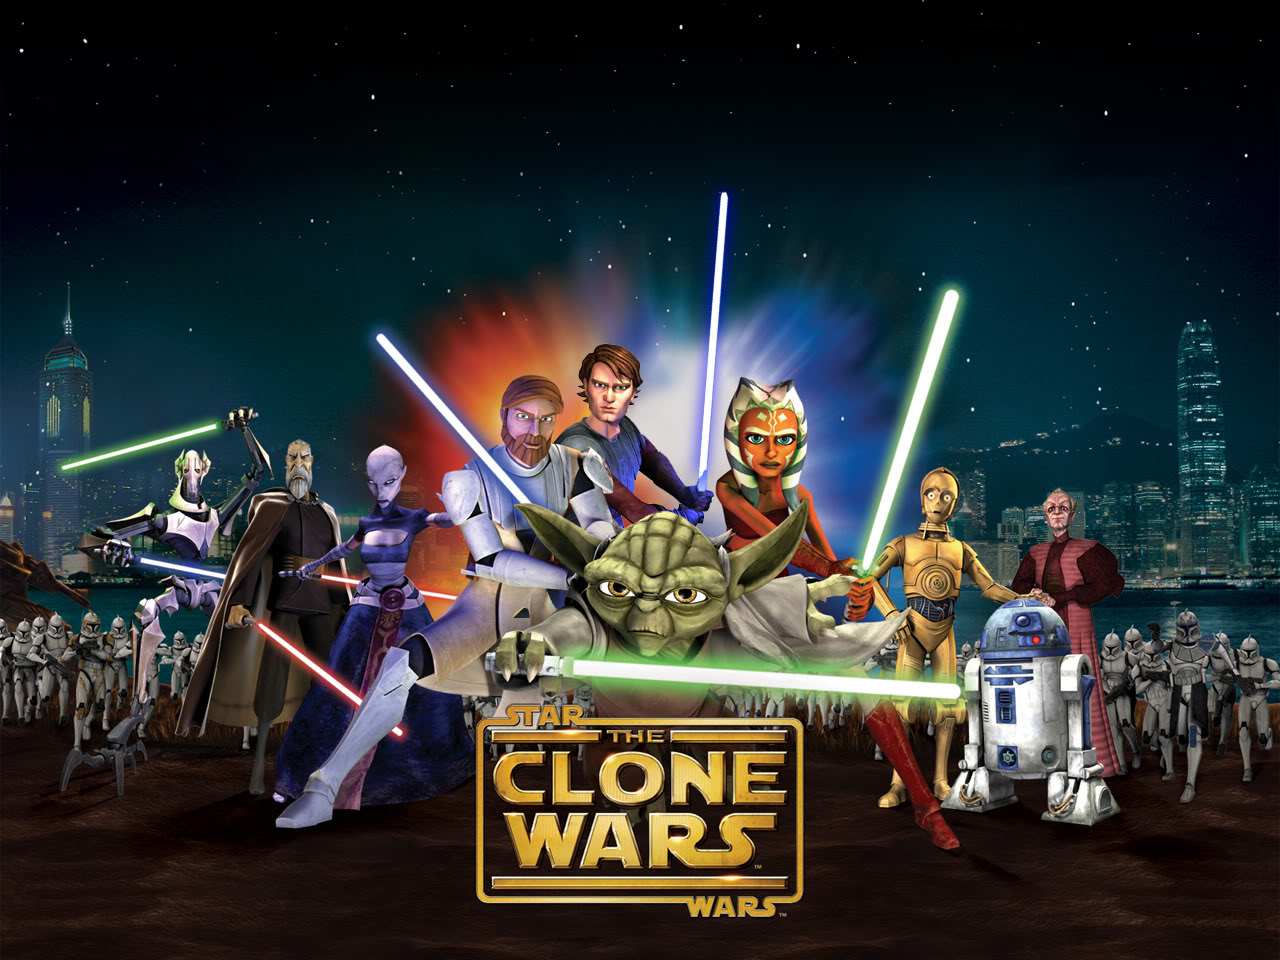 Star Wars: The Clone Wars - June 2nd